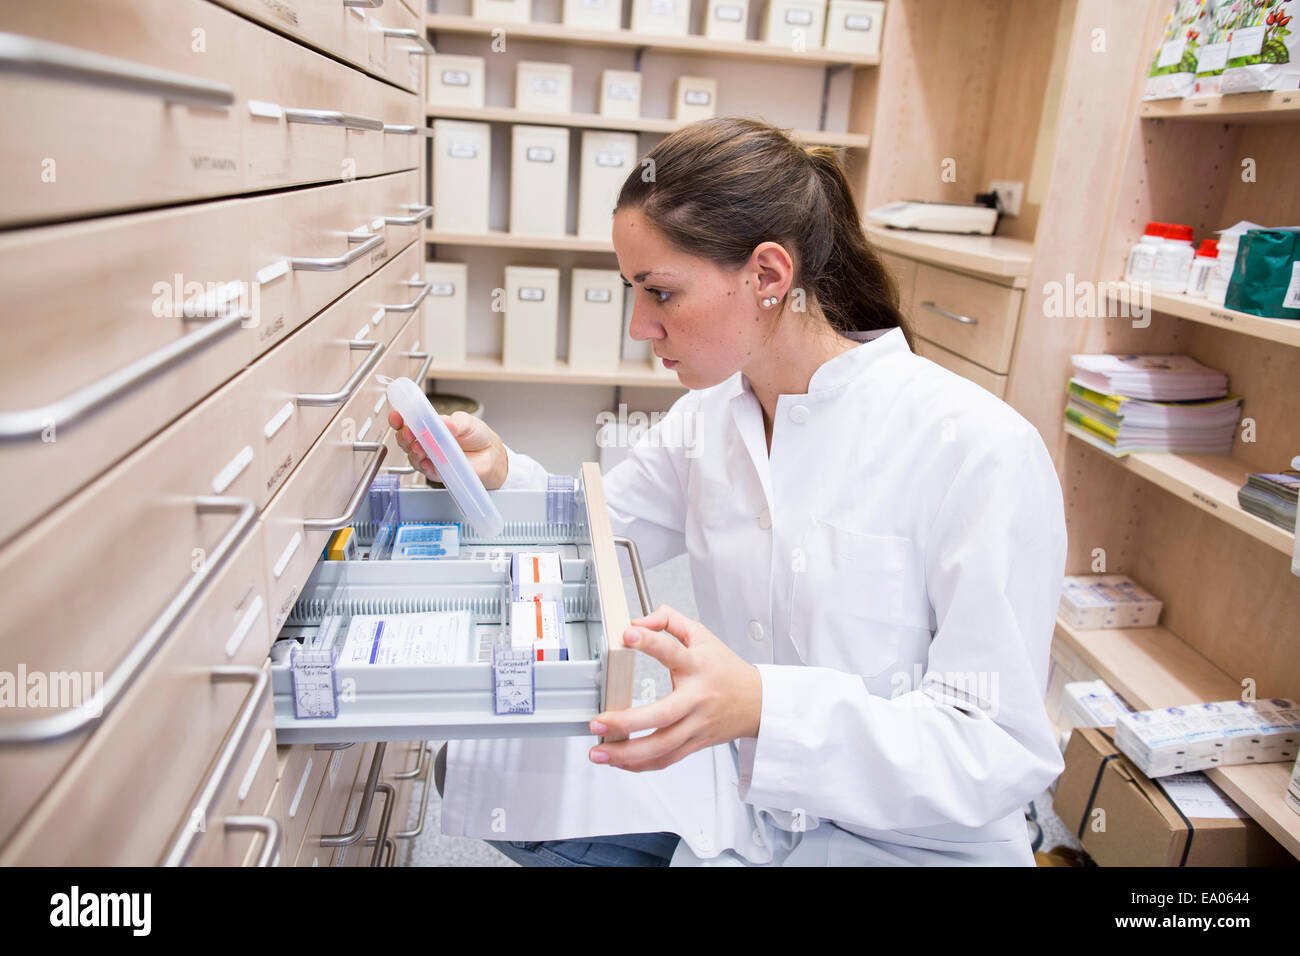 Pharmacist in pharmacy opening medicine file drawer - Stock Image